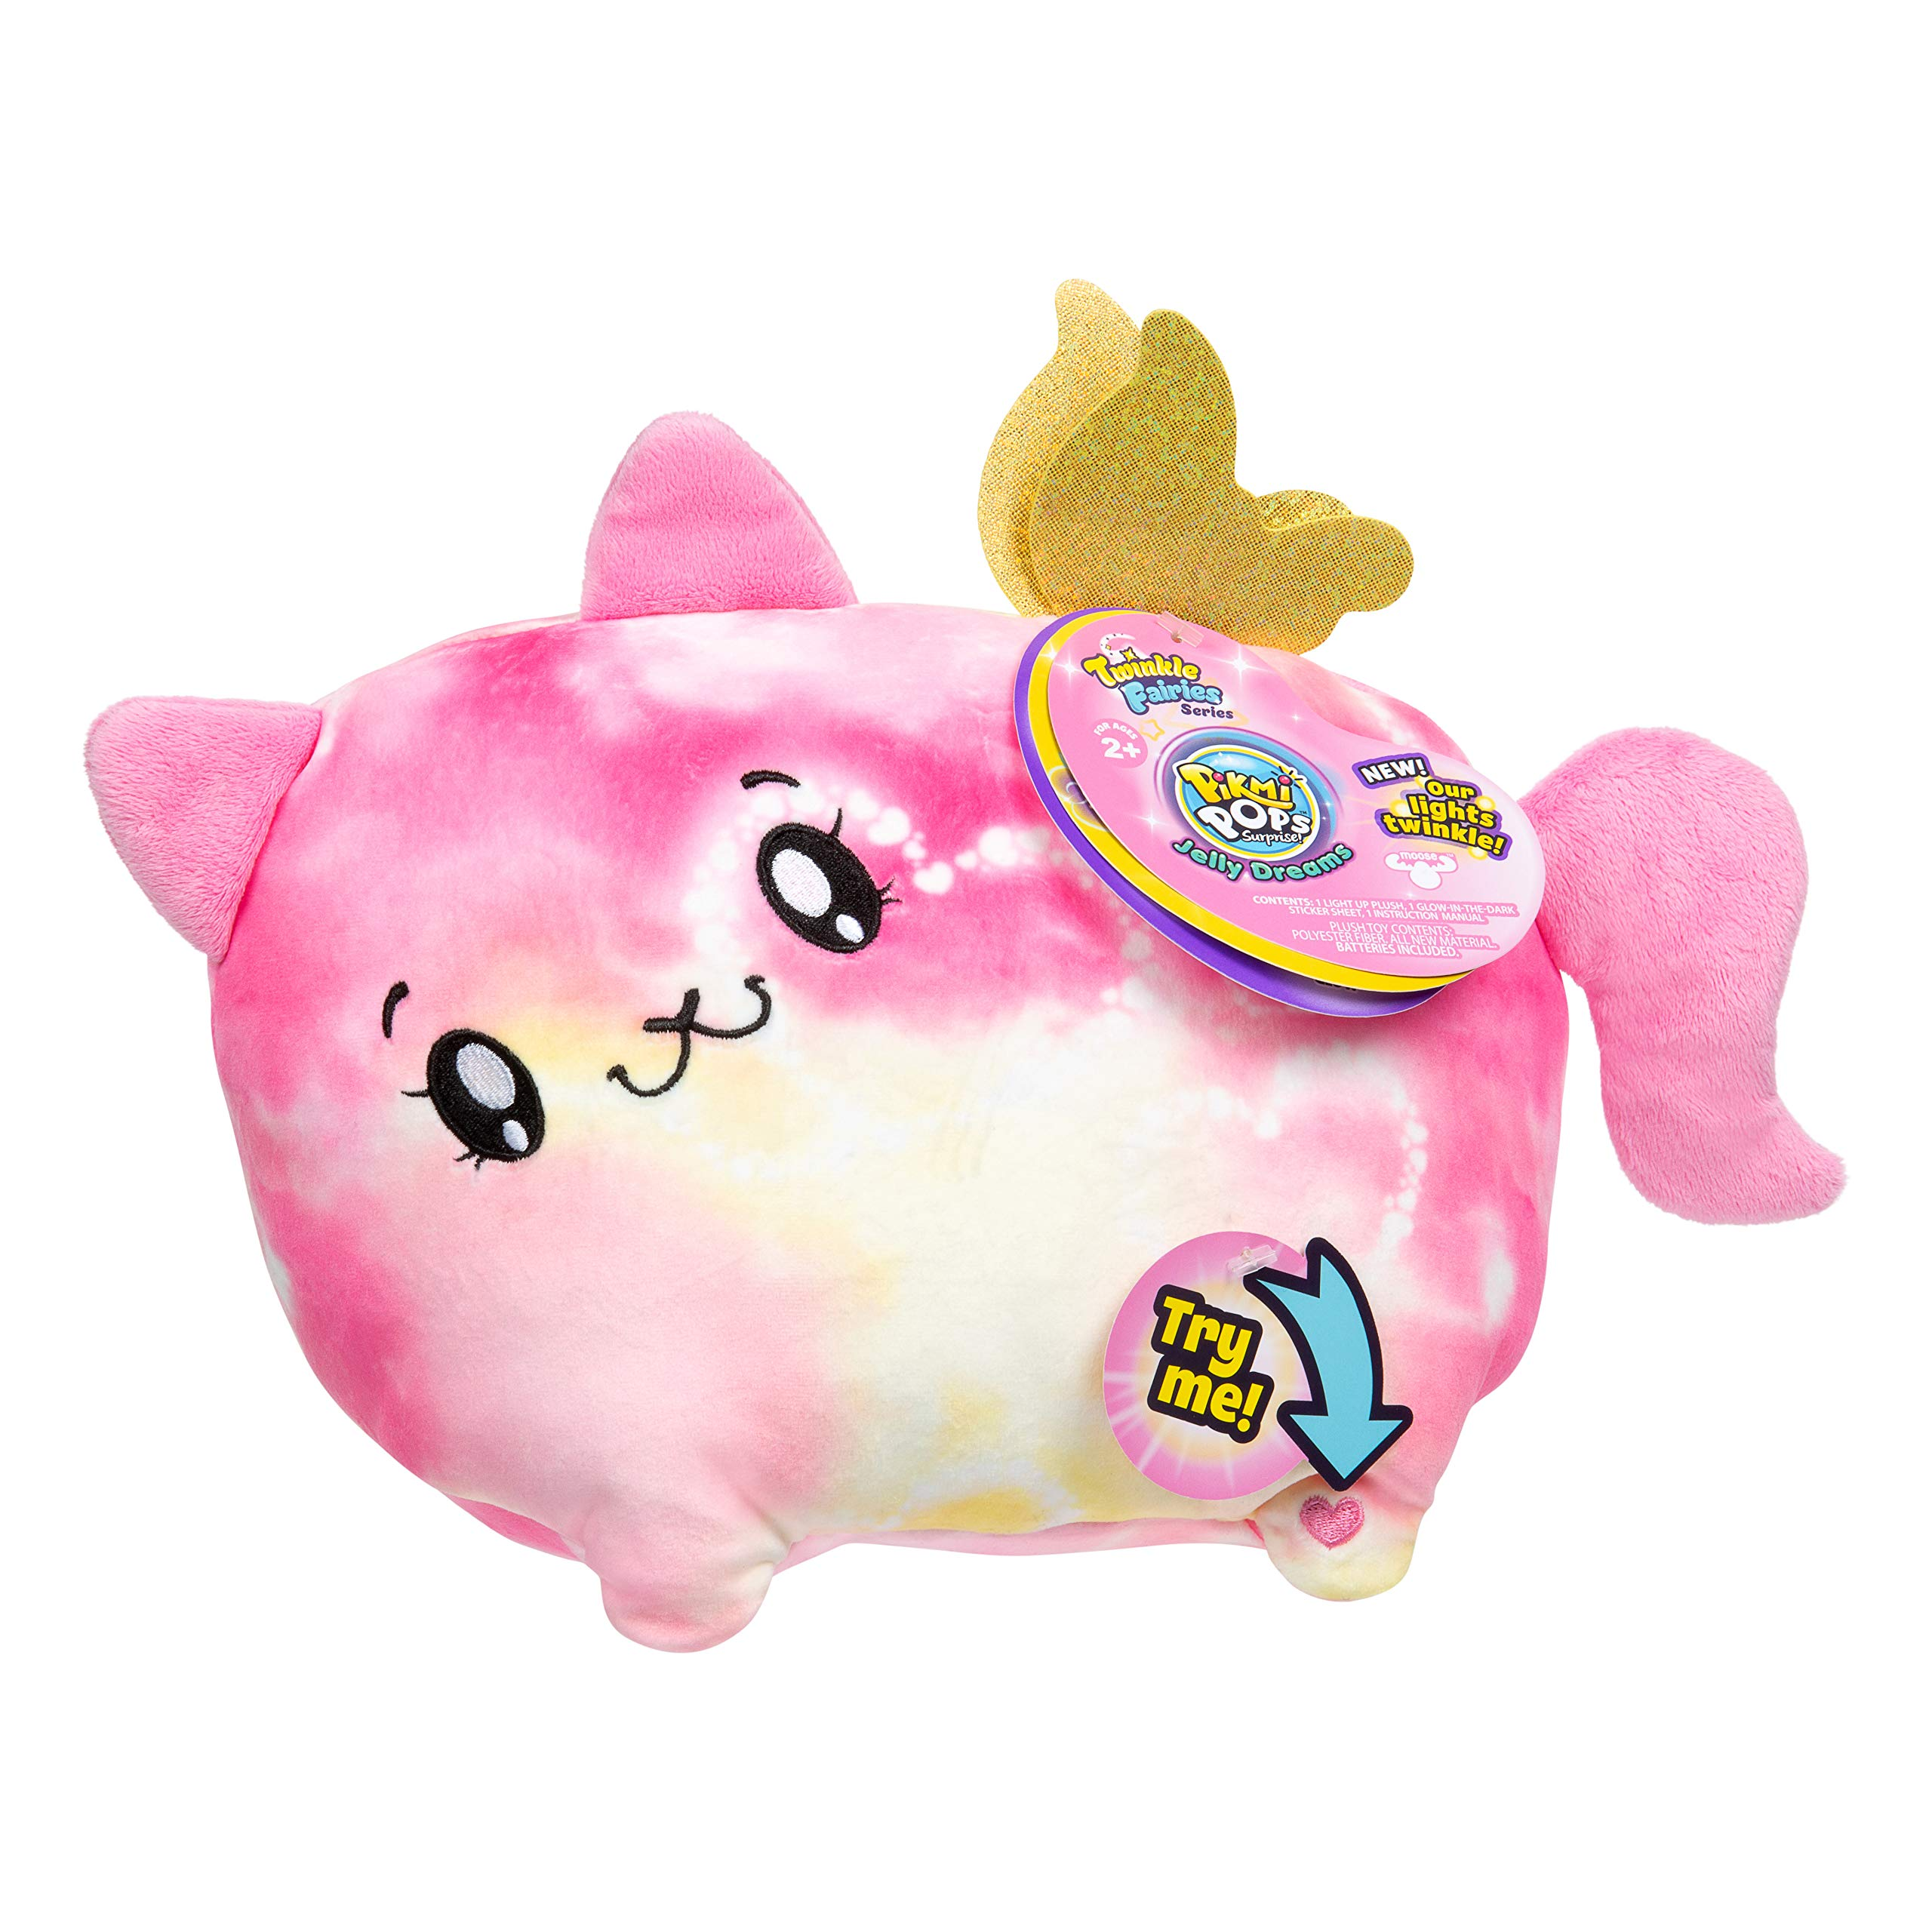 """Pikmi Pops Jelly Dreams - Twinkle Fairies Series - Beams The Cat - Collectible 11"""" LED Light Up Glowing Plush Toy"""